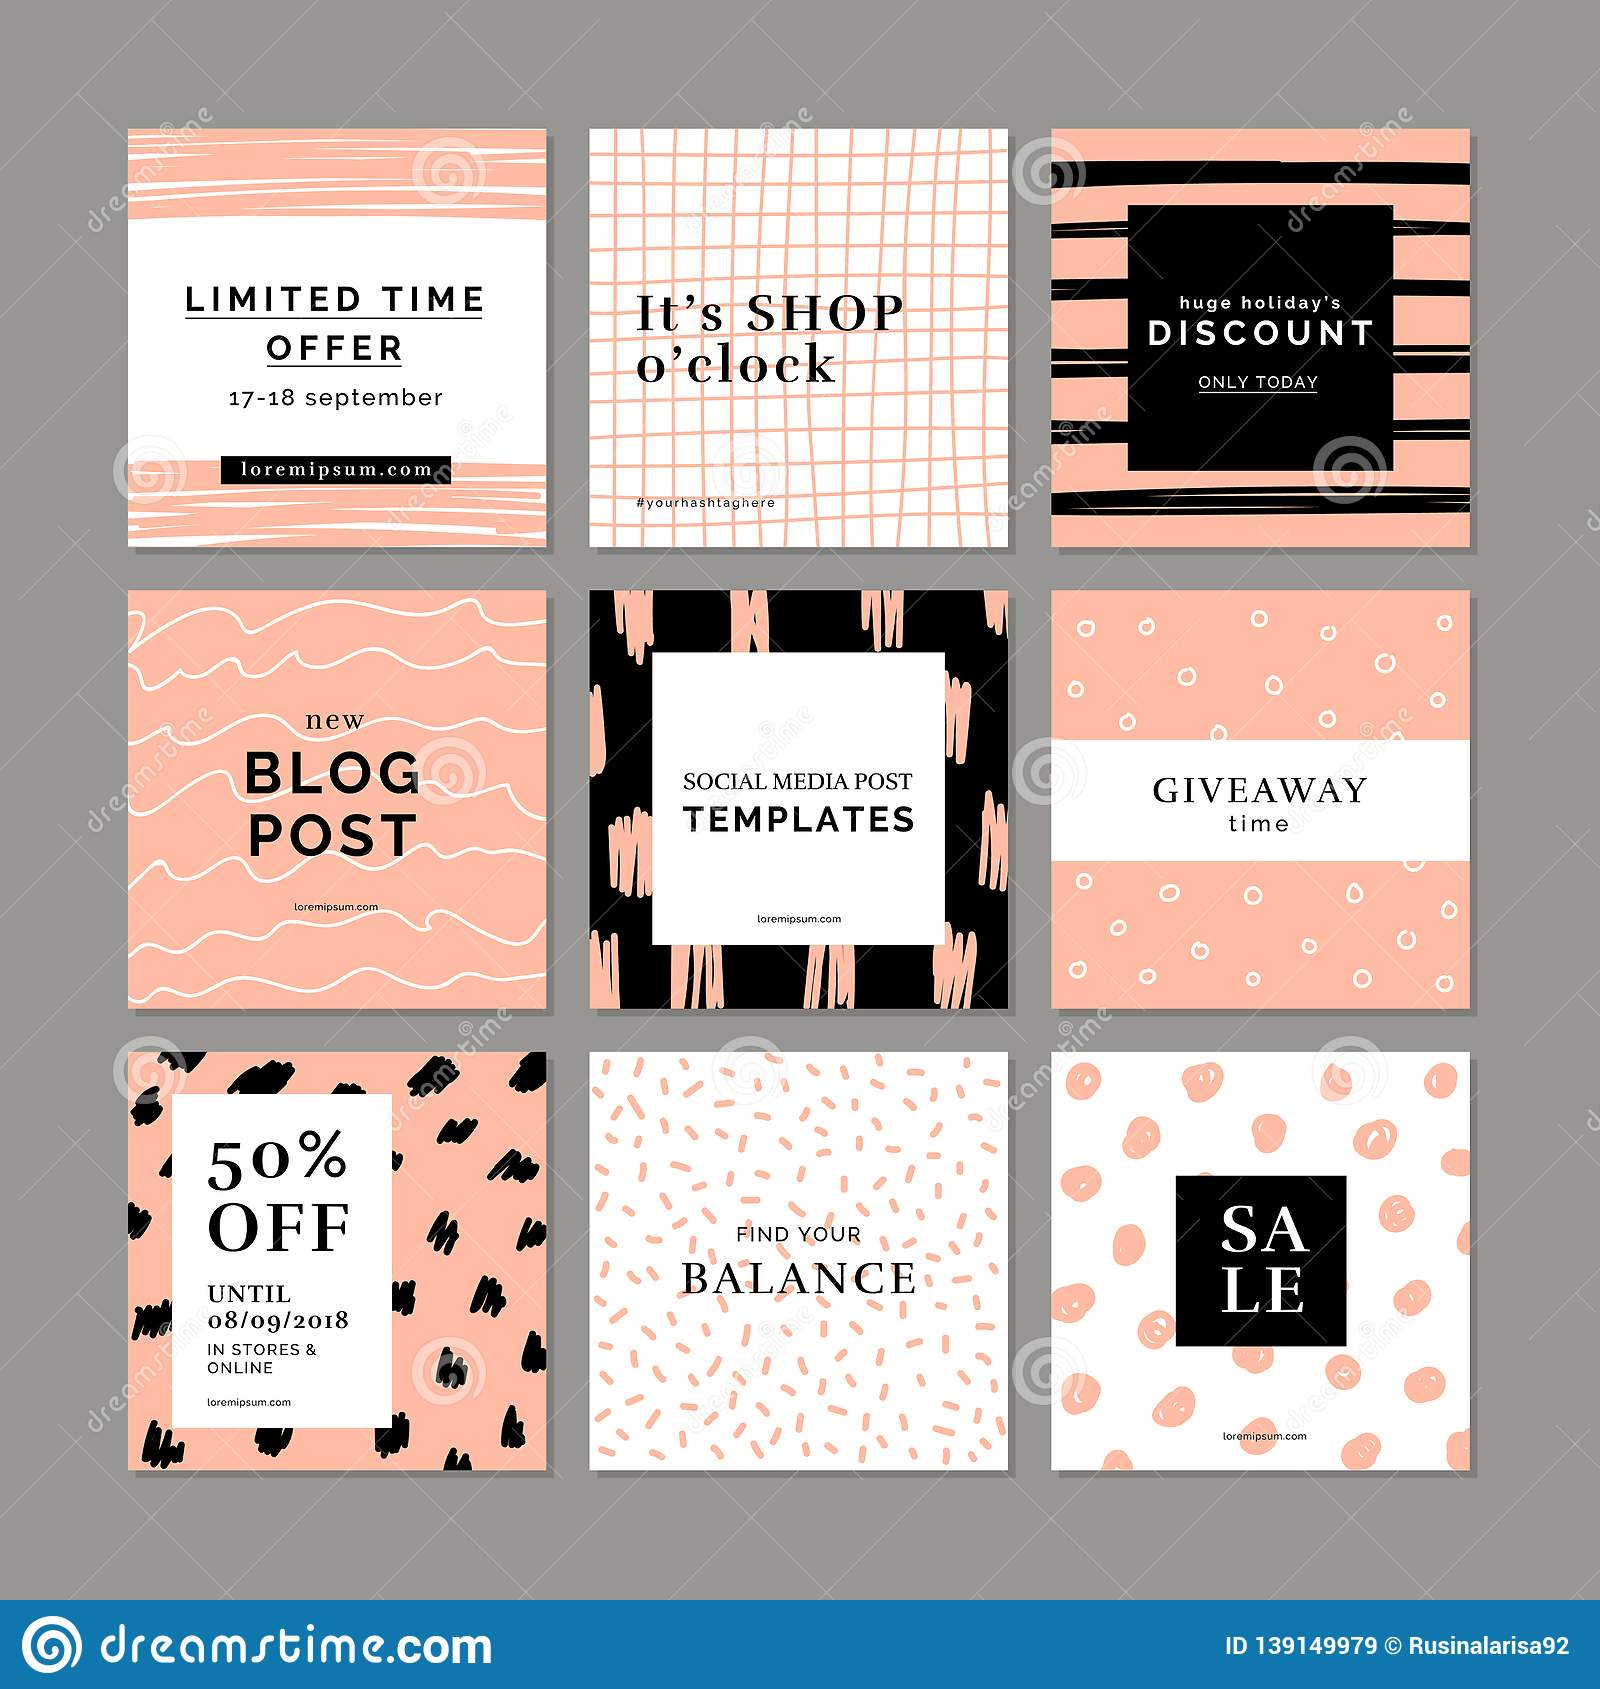 9 square layout templates for social media mobile apps or banner design social media pack graphic hand drawn backgrounds